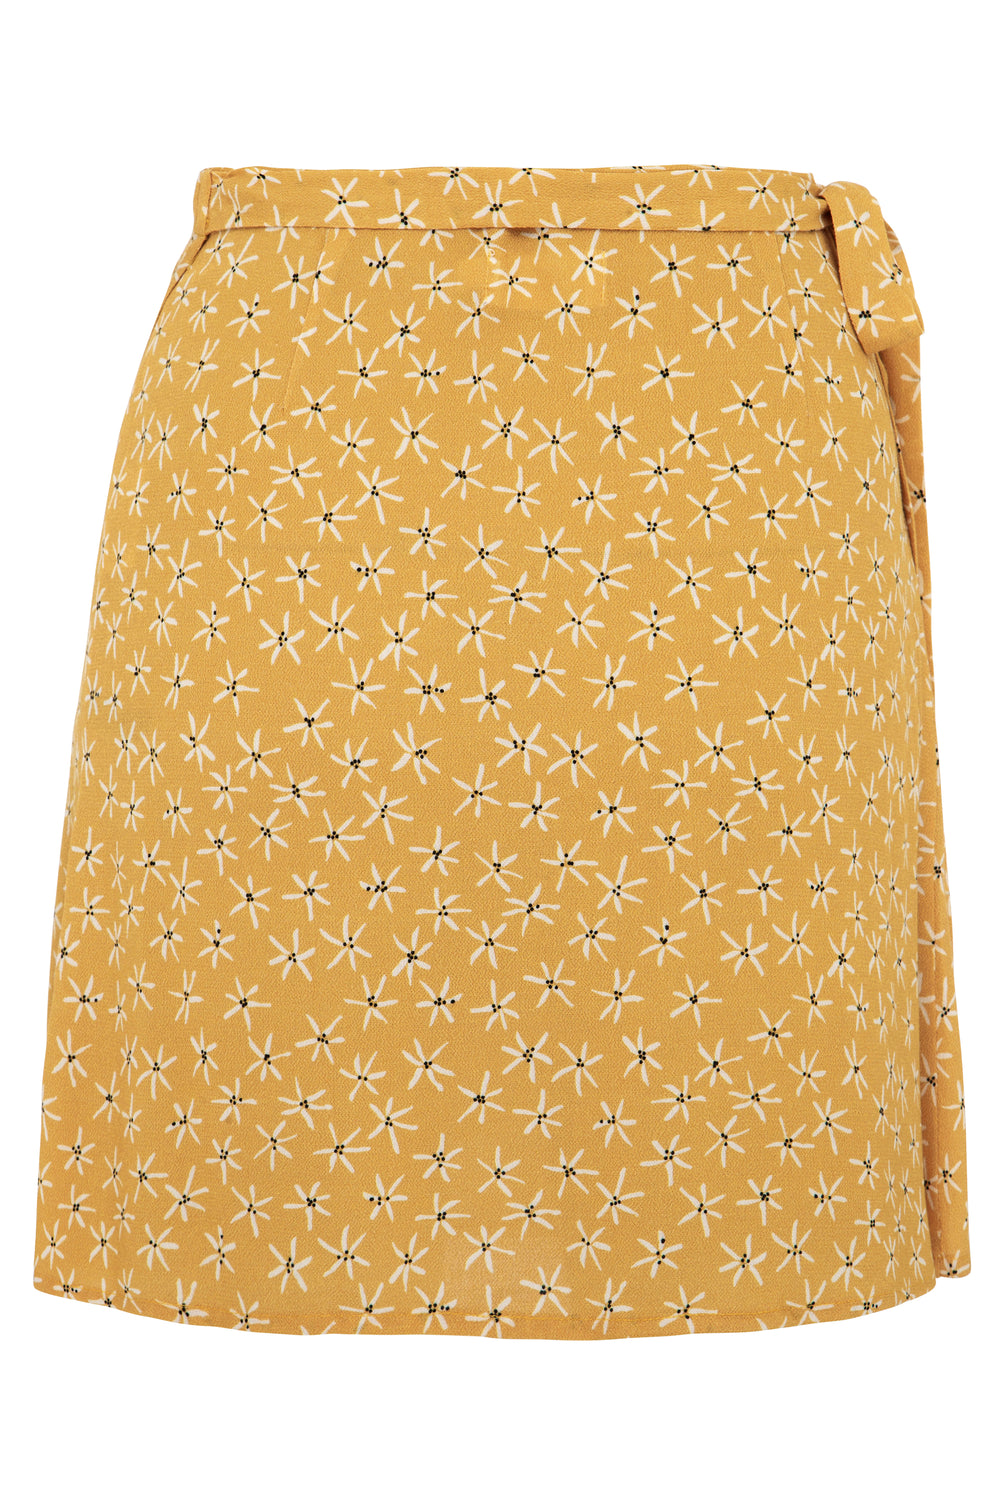 Goldie Wrap Mini Skirt